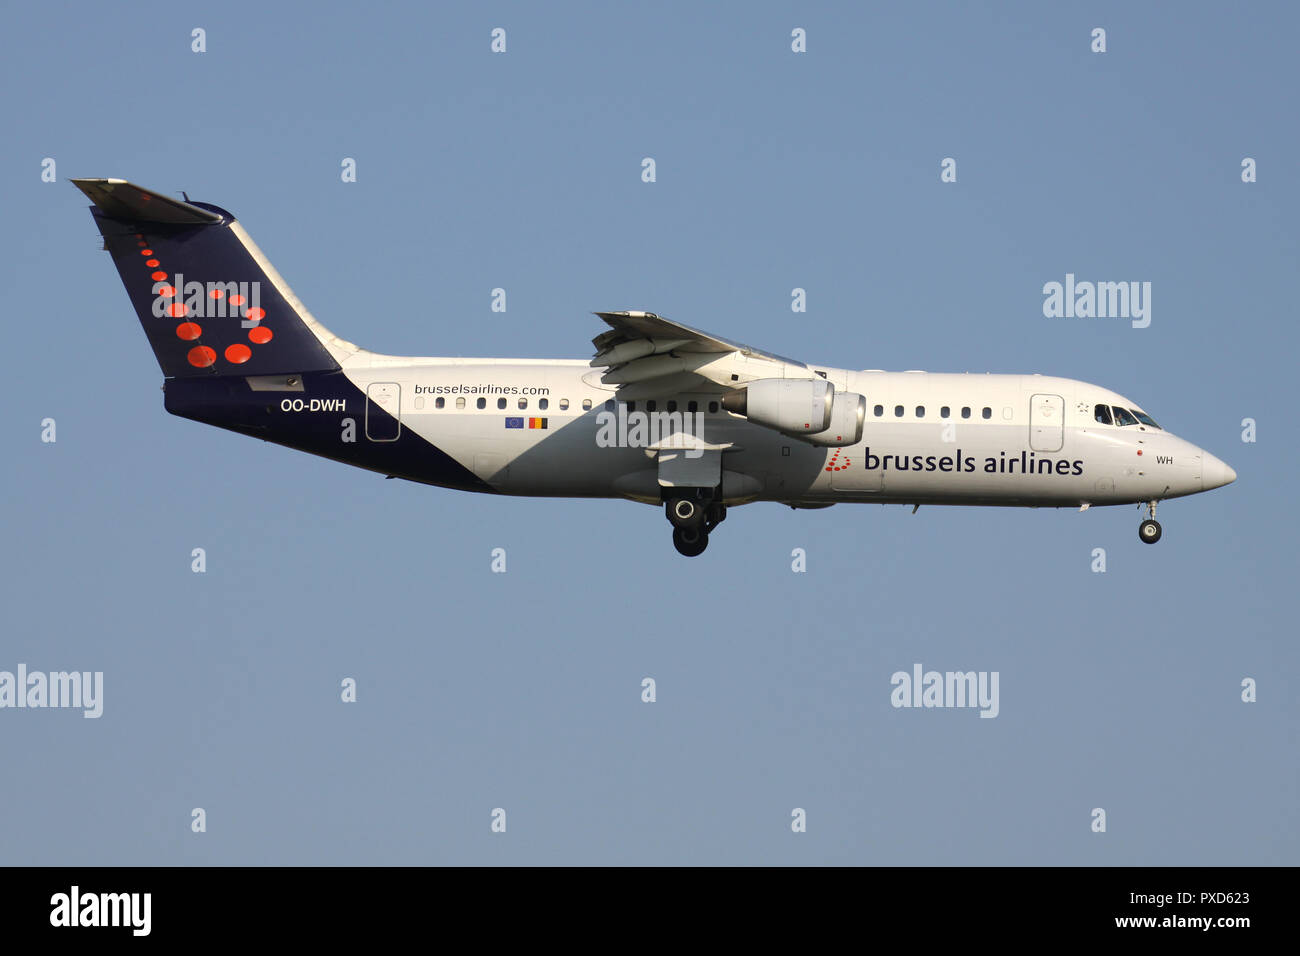 Belgian Brussels Airlines Avro RJ100 with registration OO-DWH on short final for runway 01 of Brussels Airport. - Stock Image